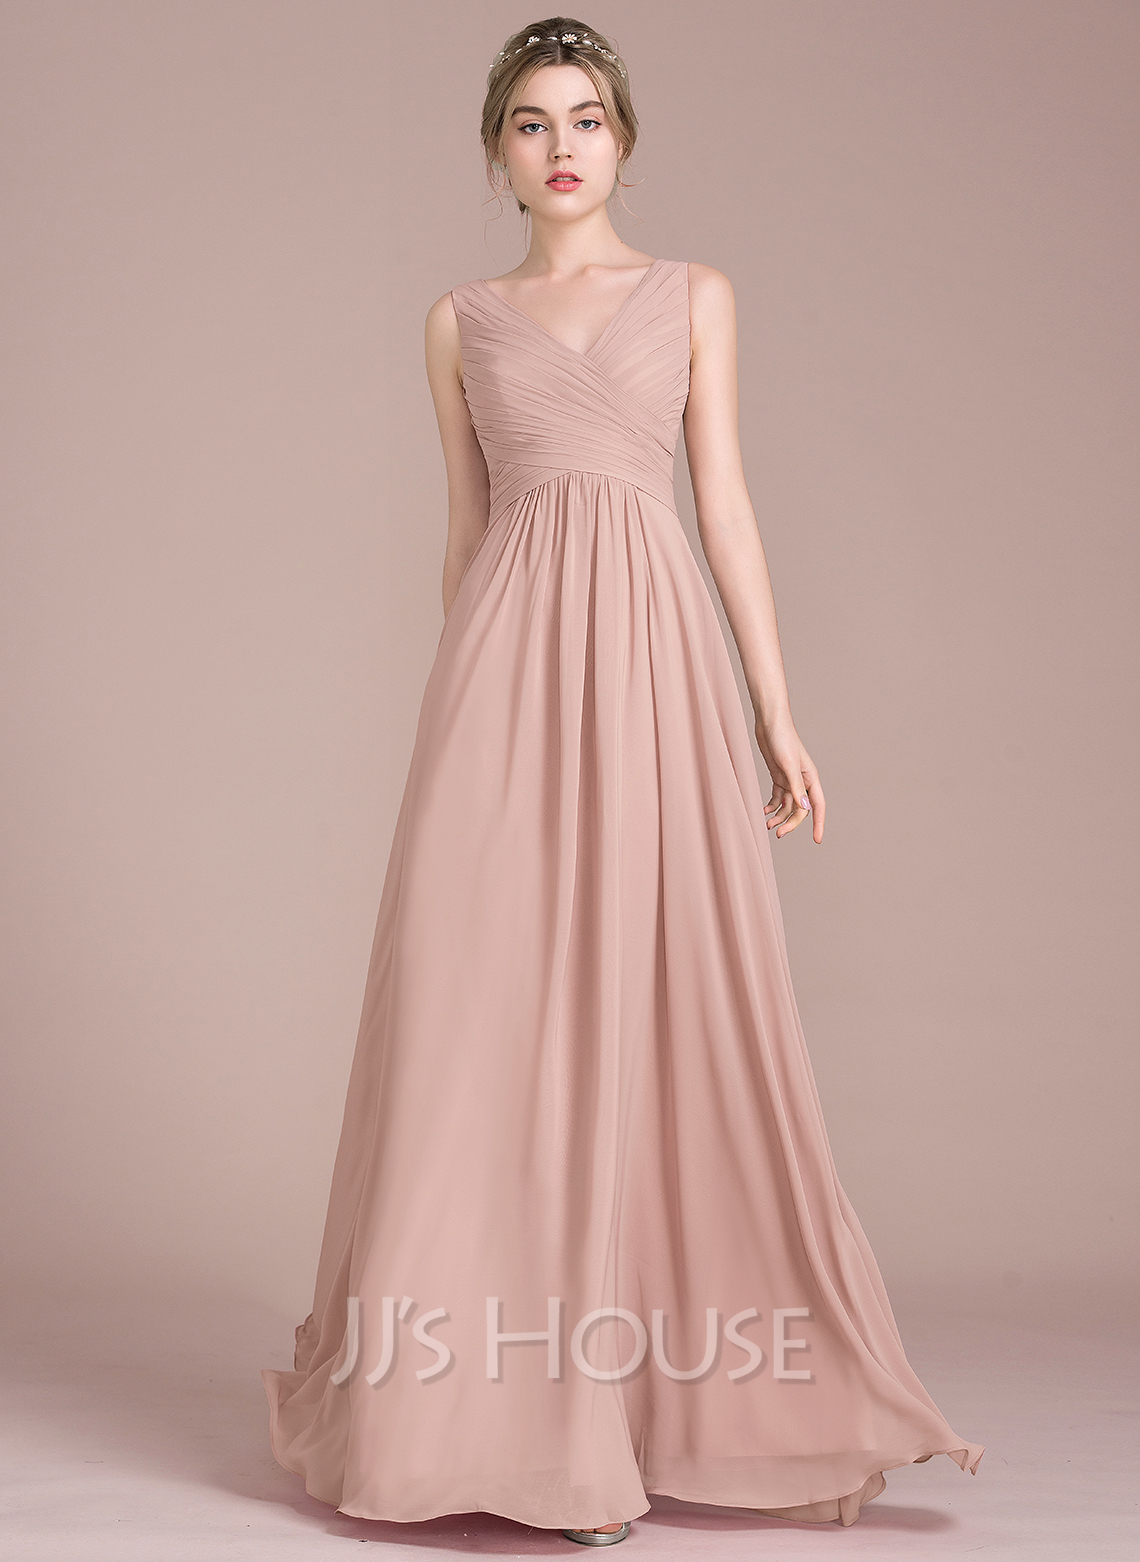 A lineprincess v neck floor length chiffon bridesmaid dress with a lineprincess v neck floor length chiffon bridesmaid dress with ruffle loading zoom ombrellifo Image collections